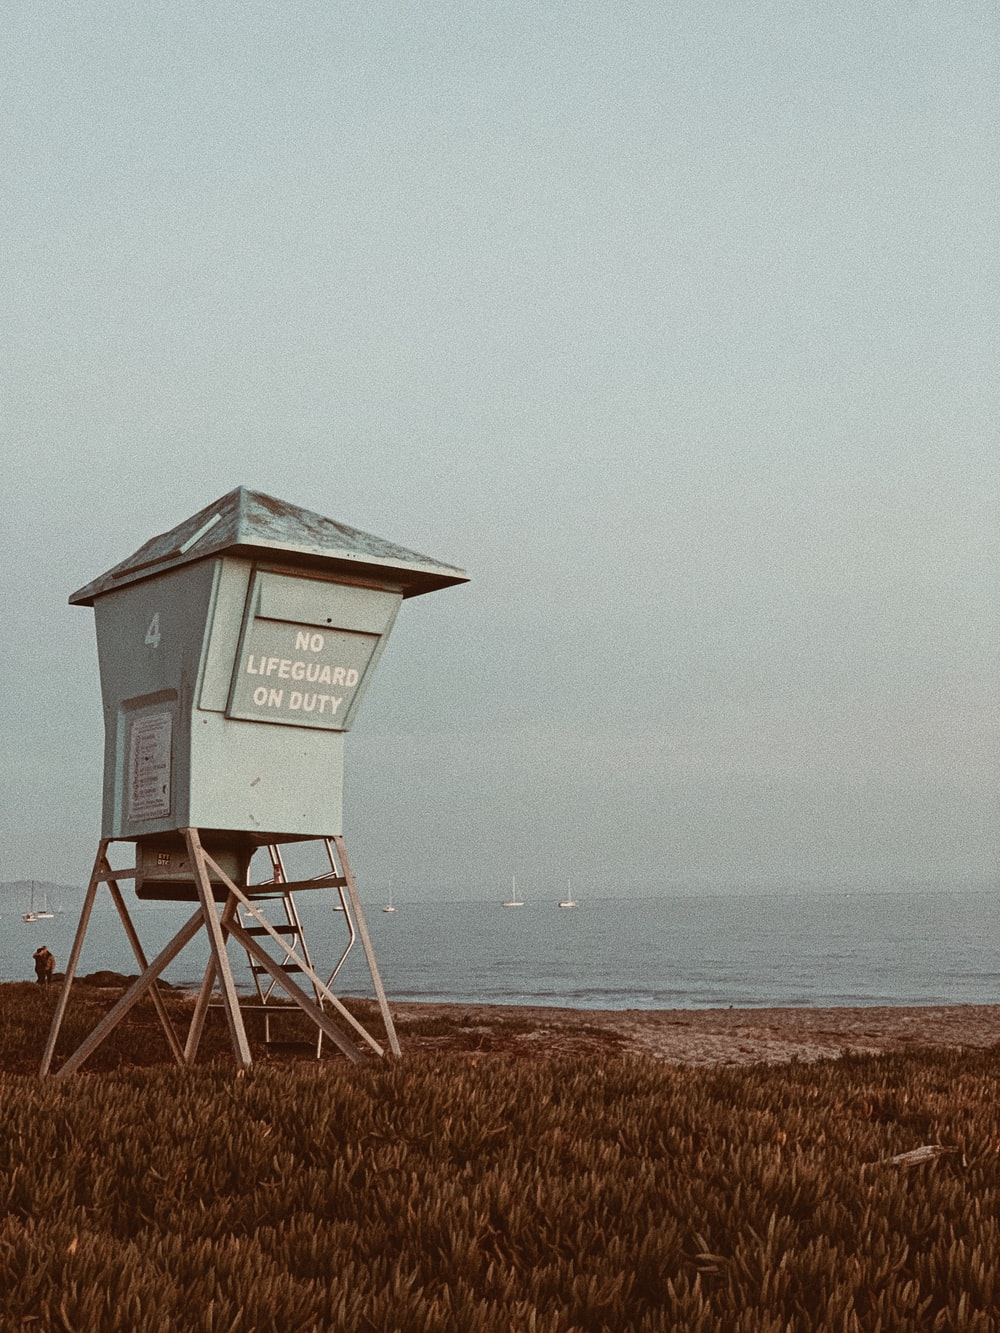 white wooden lifeguard house on brown field under white sky during daytime